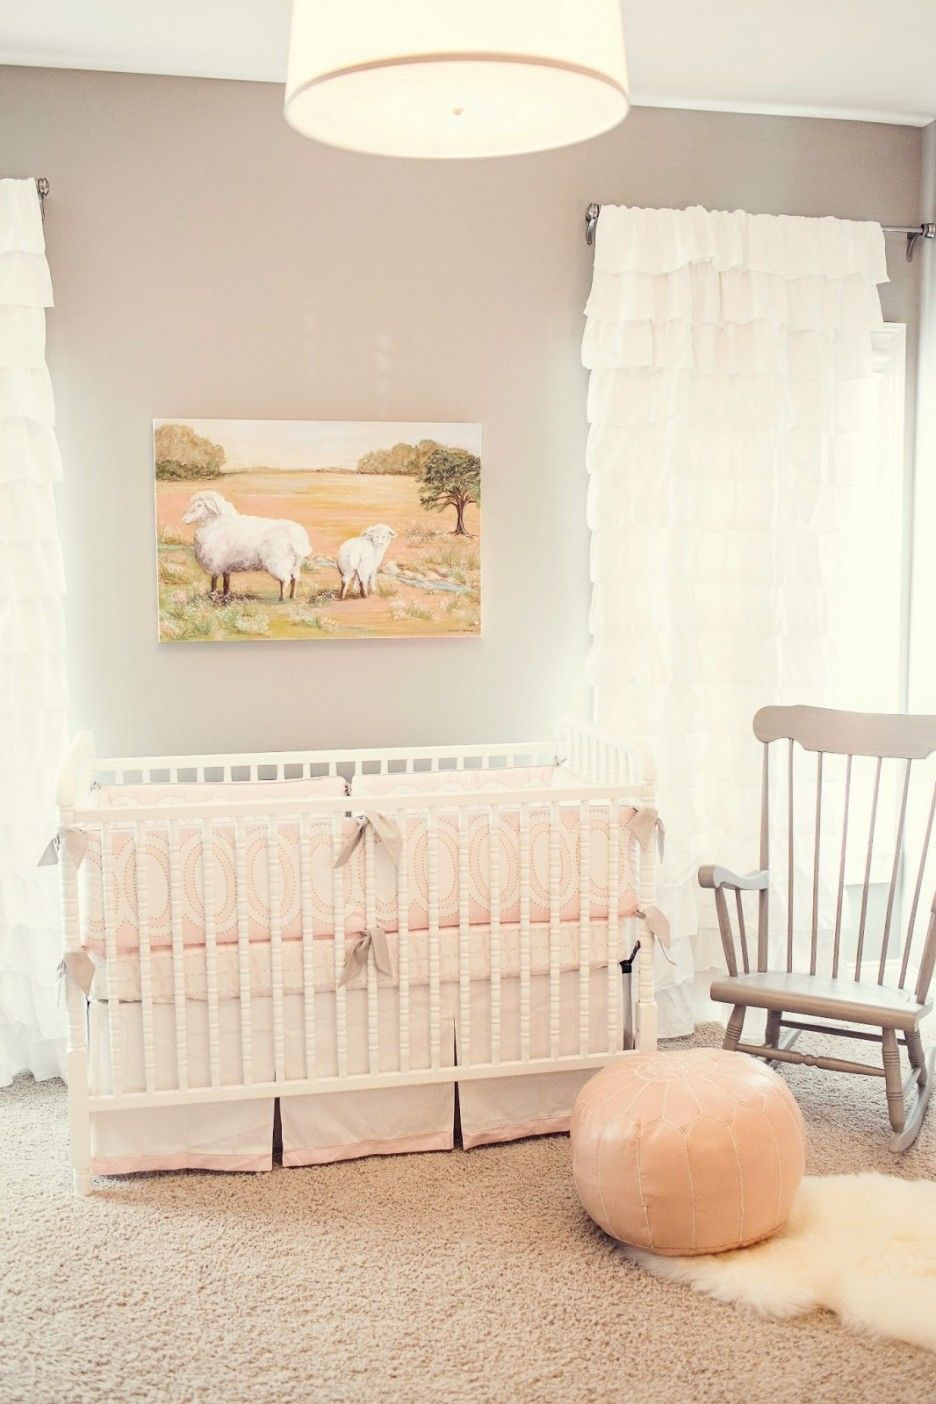 cute design ideas convertible furniture. Furniture,Cabin Fever Nursery Room Design With Convertible Davinci Jenny Lind Crib And Shag Solid White Rug Also Faux Silk Lined Curtain,Pretty Cute Ideas Furniture